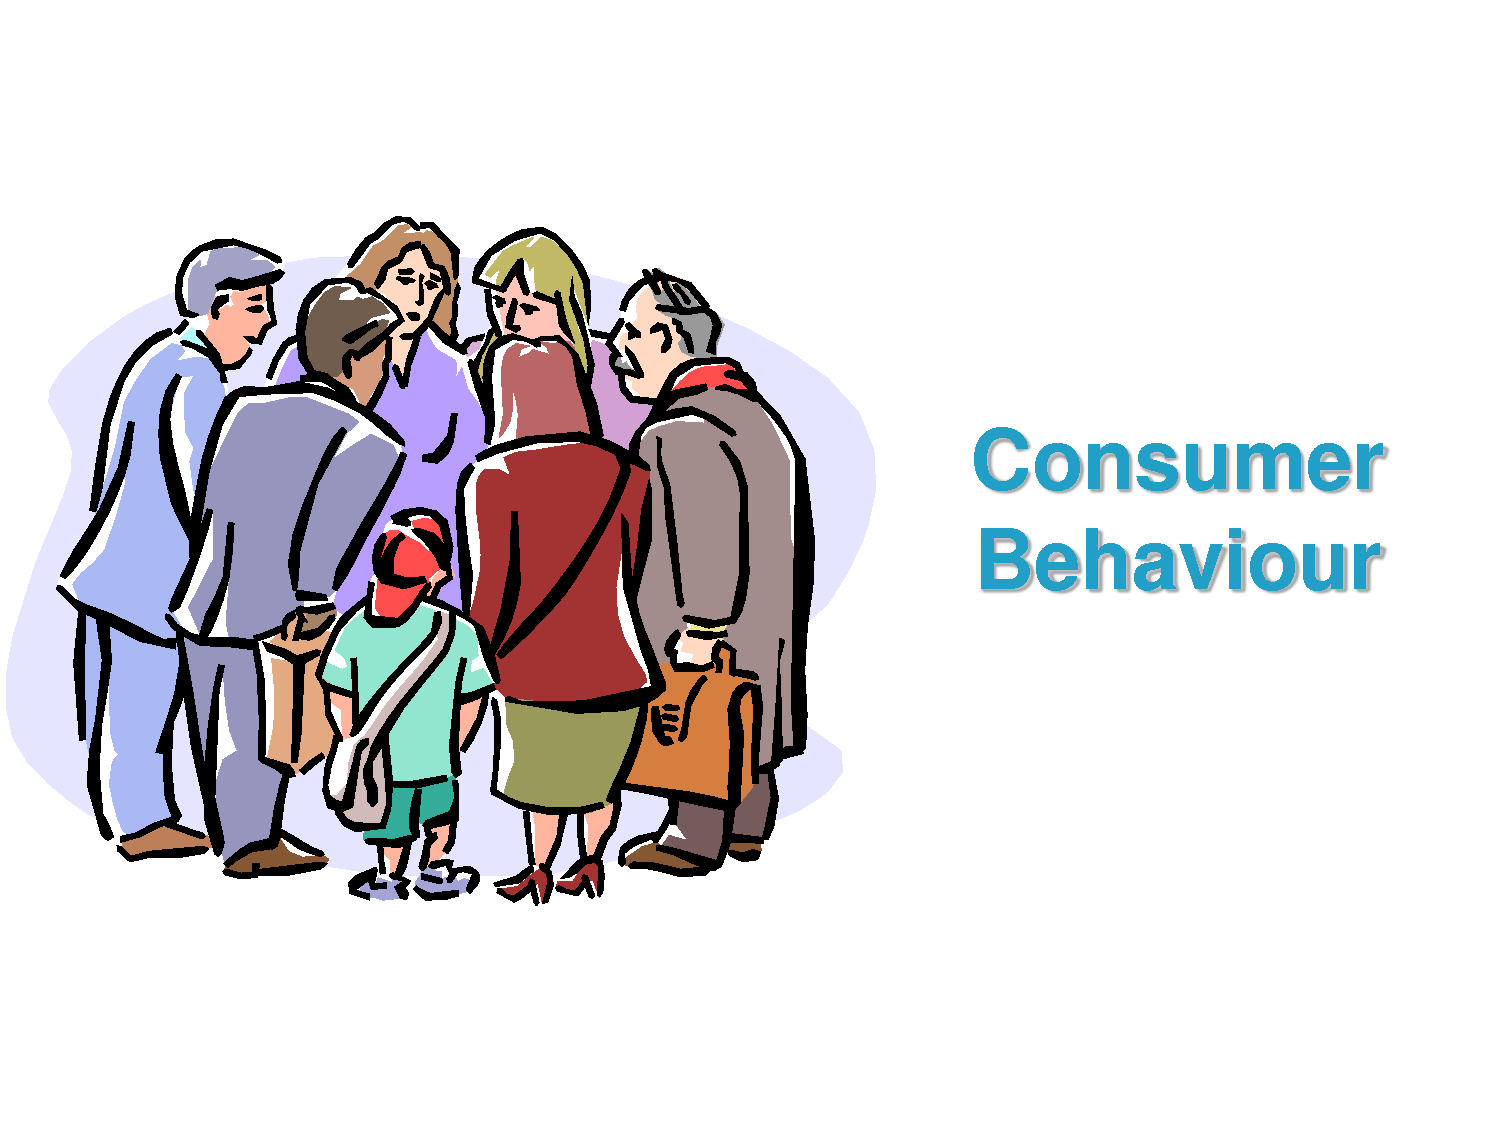 Research papers on consumer buying behavior